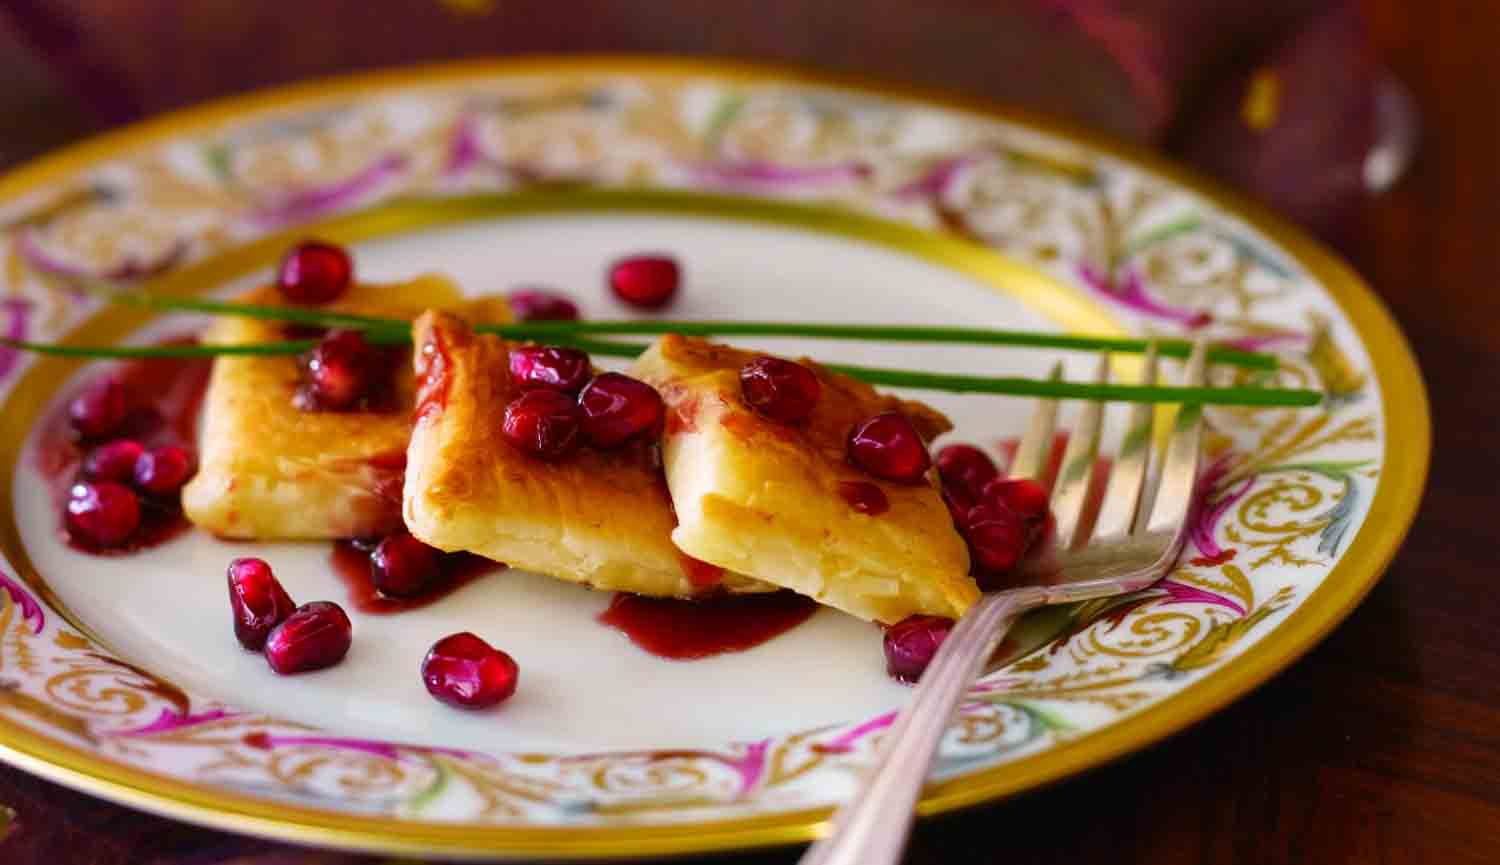 Tom's Toasted Brie with a Pomegranate Raspberry Reduction